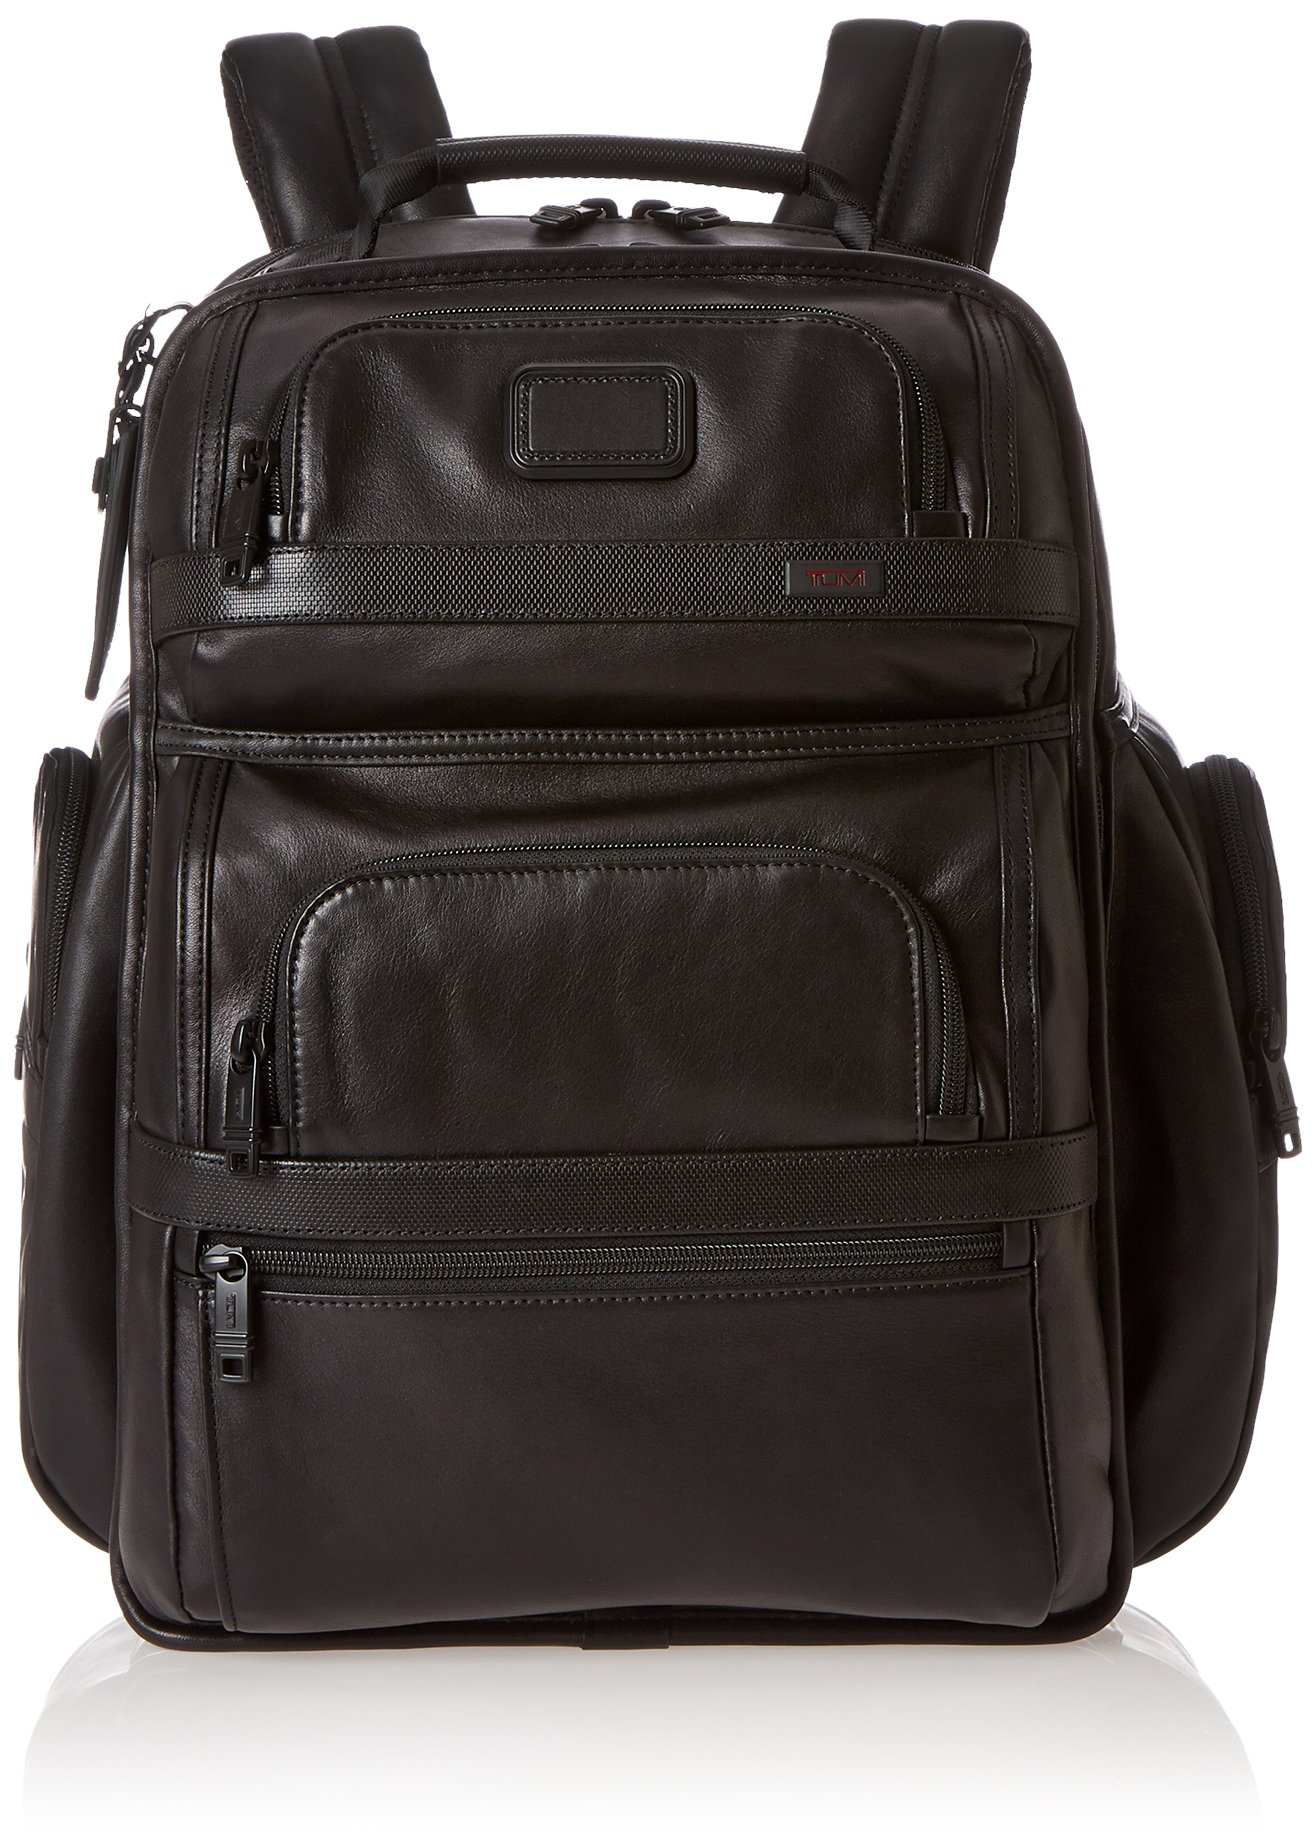 Tumi Alpha 2 T-Pass Business Class Leather Brief Pack, Black, One Size by Tumi